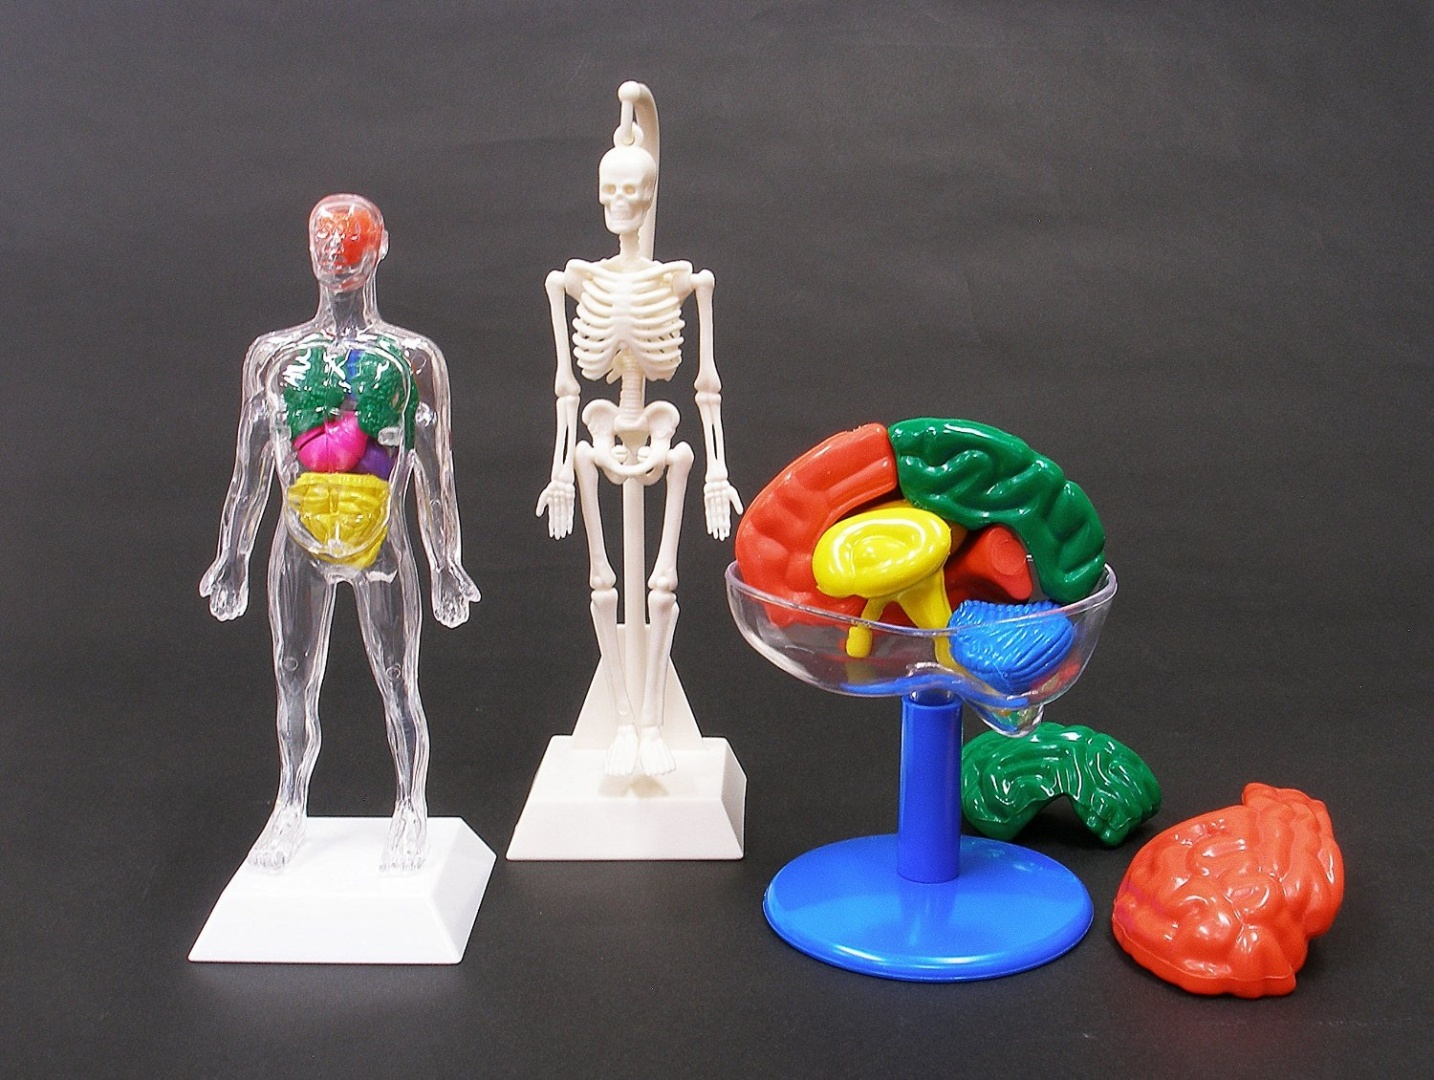 Human Body Model Toys: Buy Online from Fishpond.co.nz